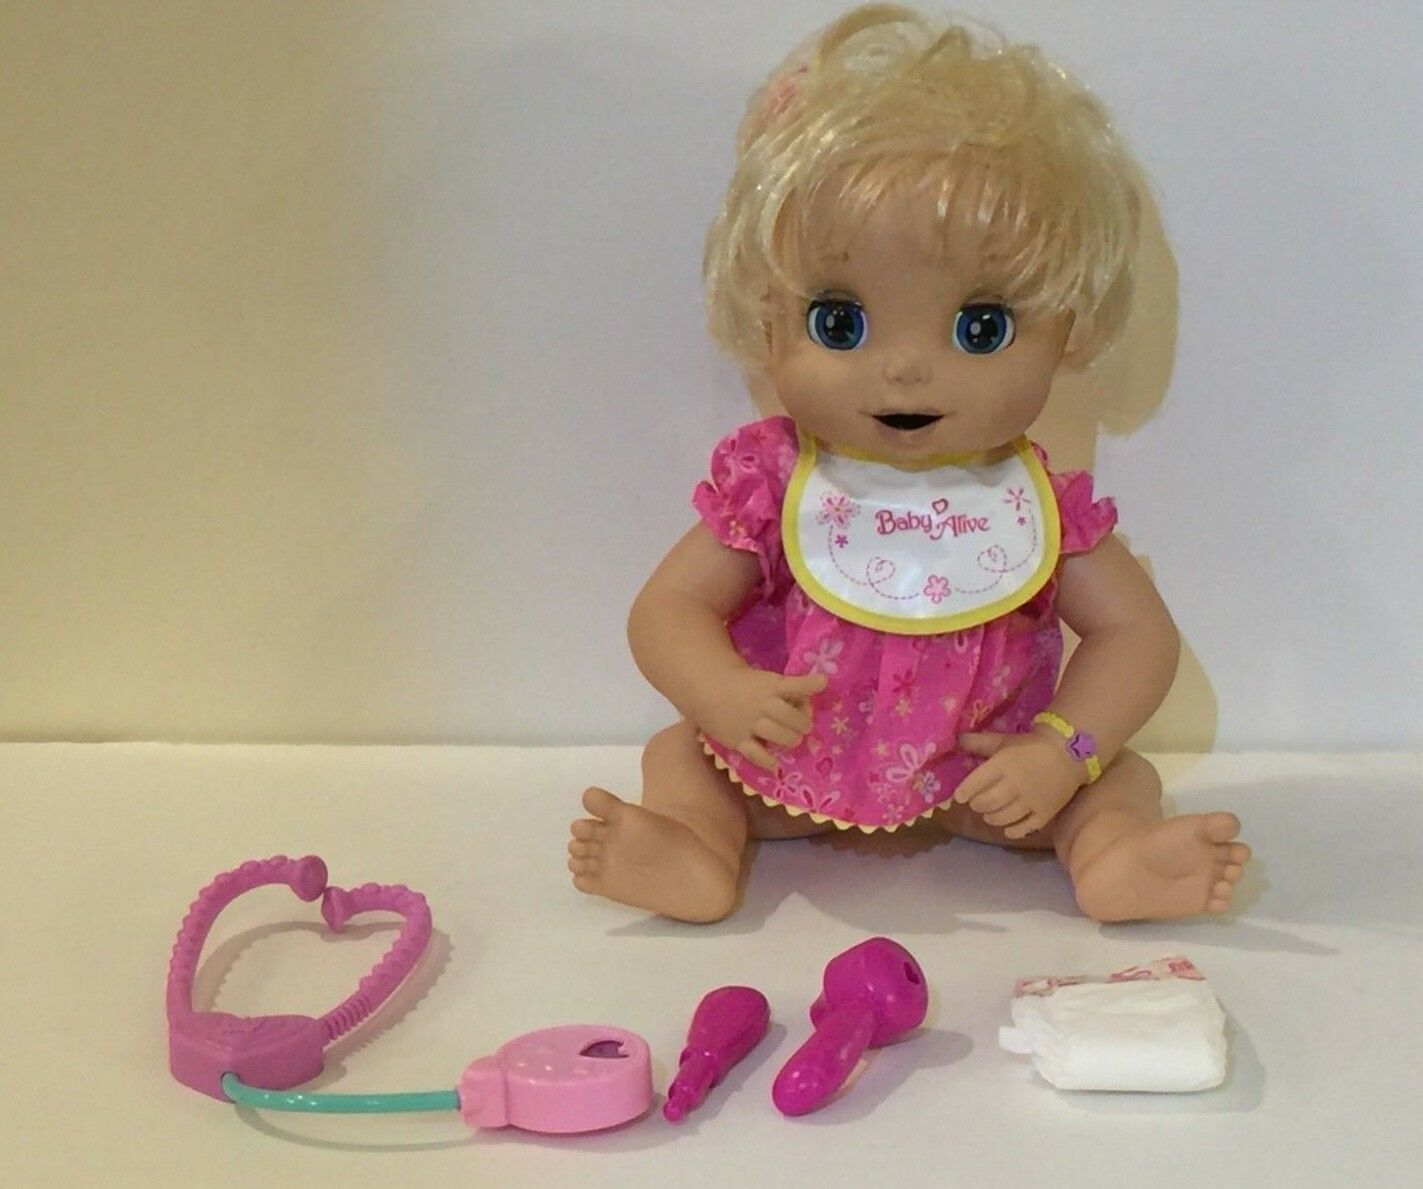 Hasbro Baby Alive Caucasian The doll Eats, Drinking & Poops It says 20+ Phases